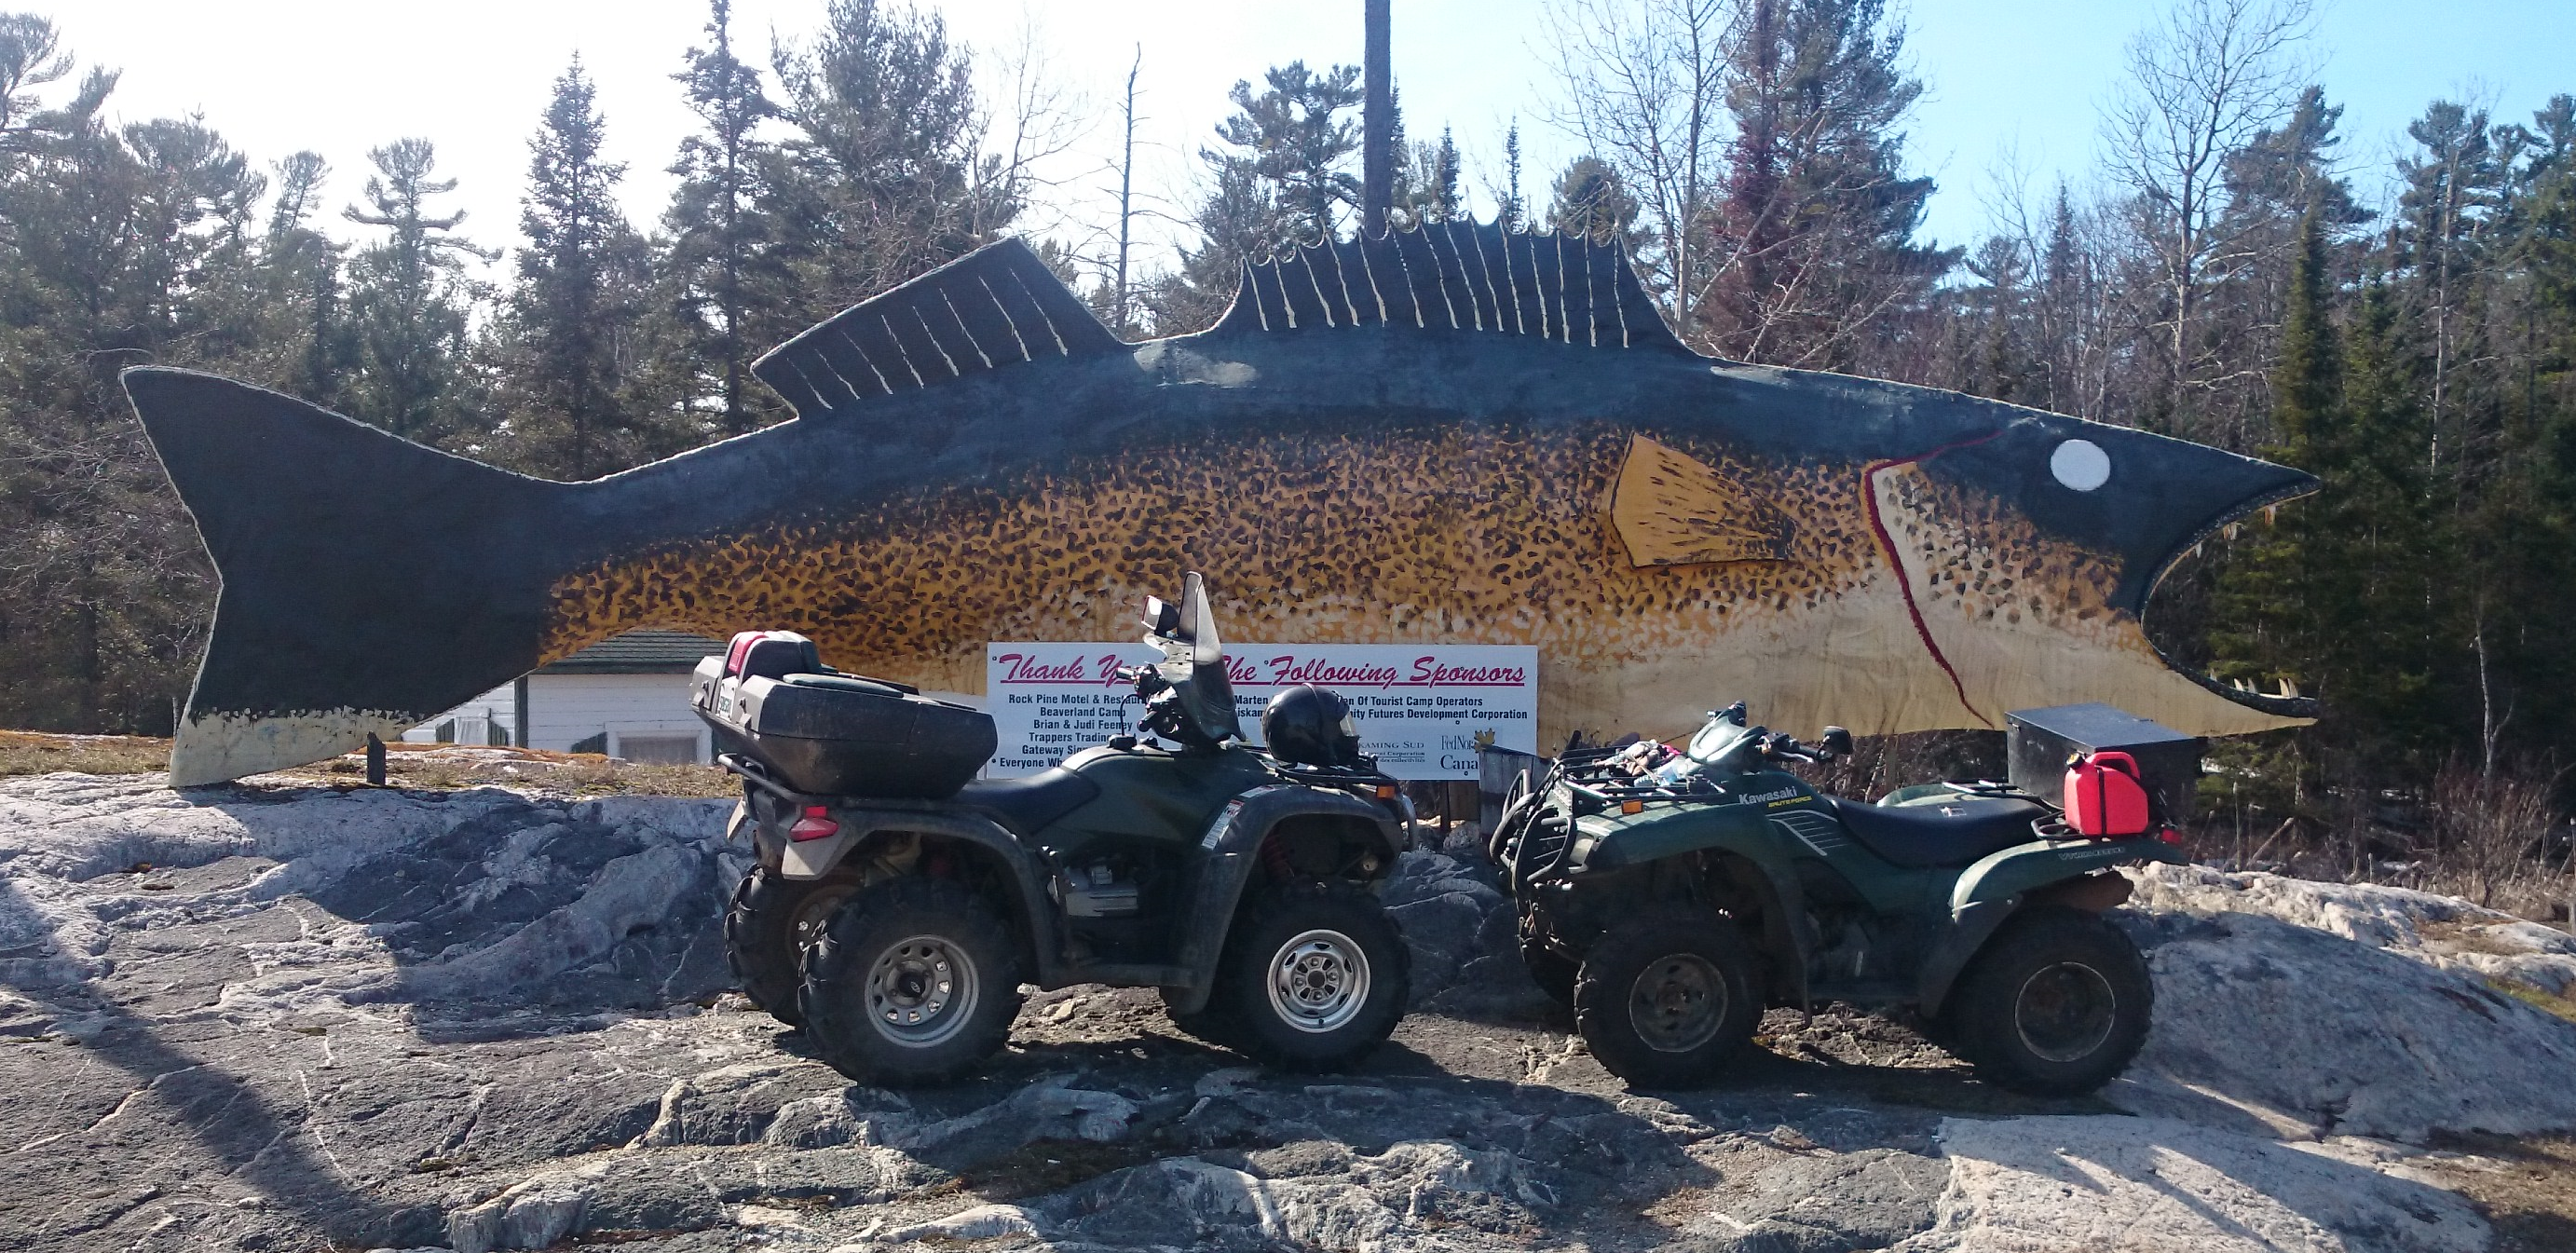 Fish with ATVs